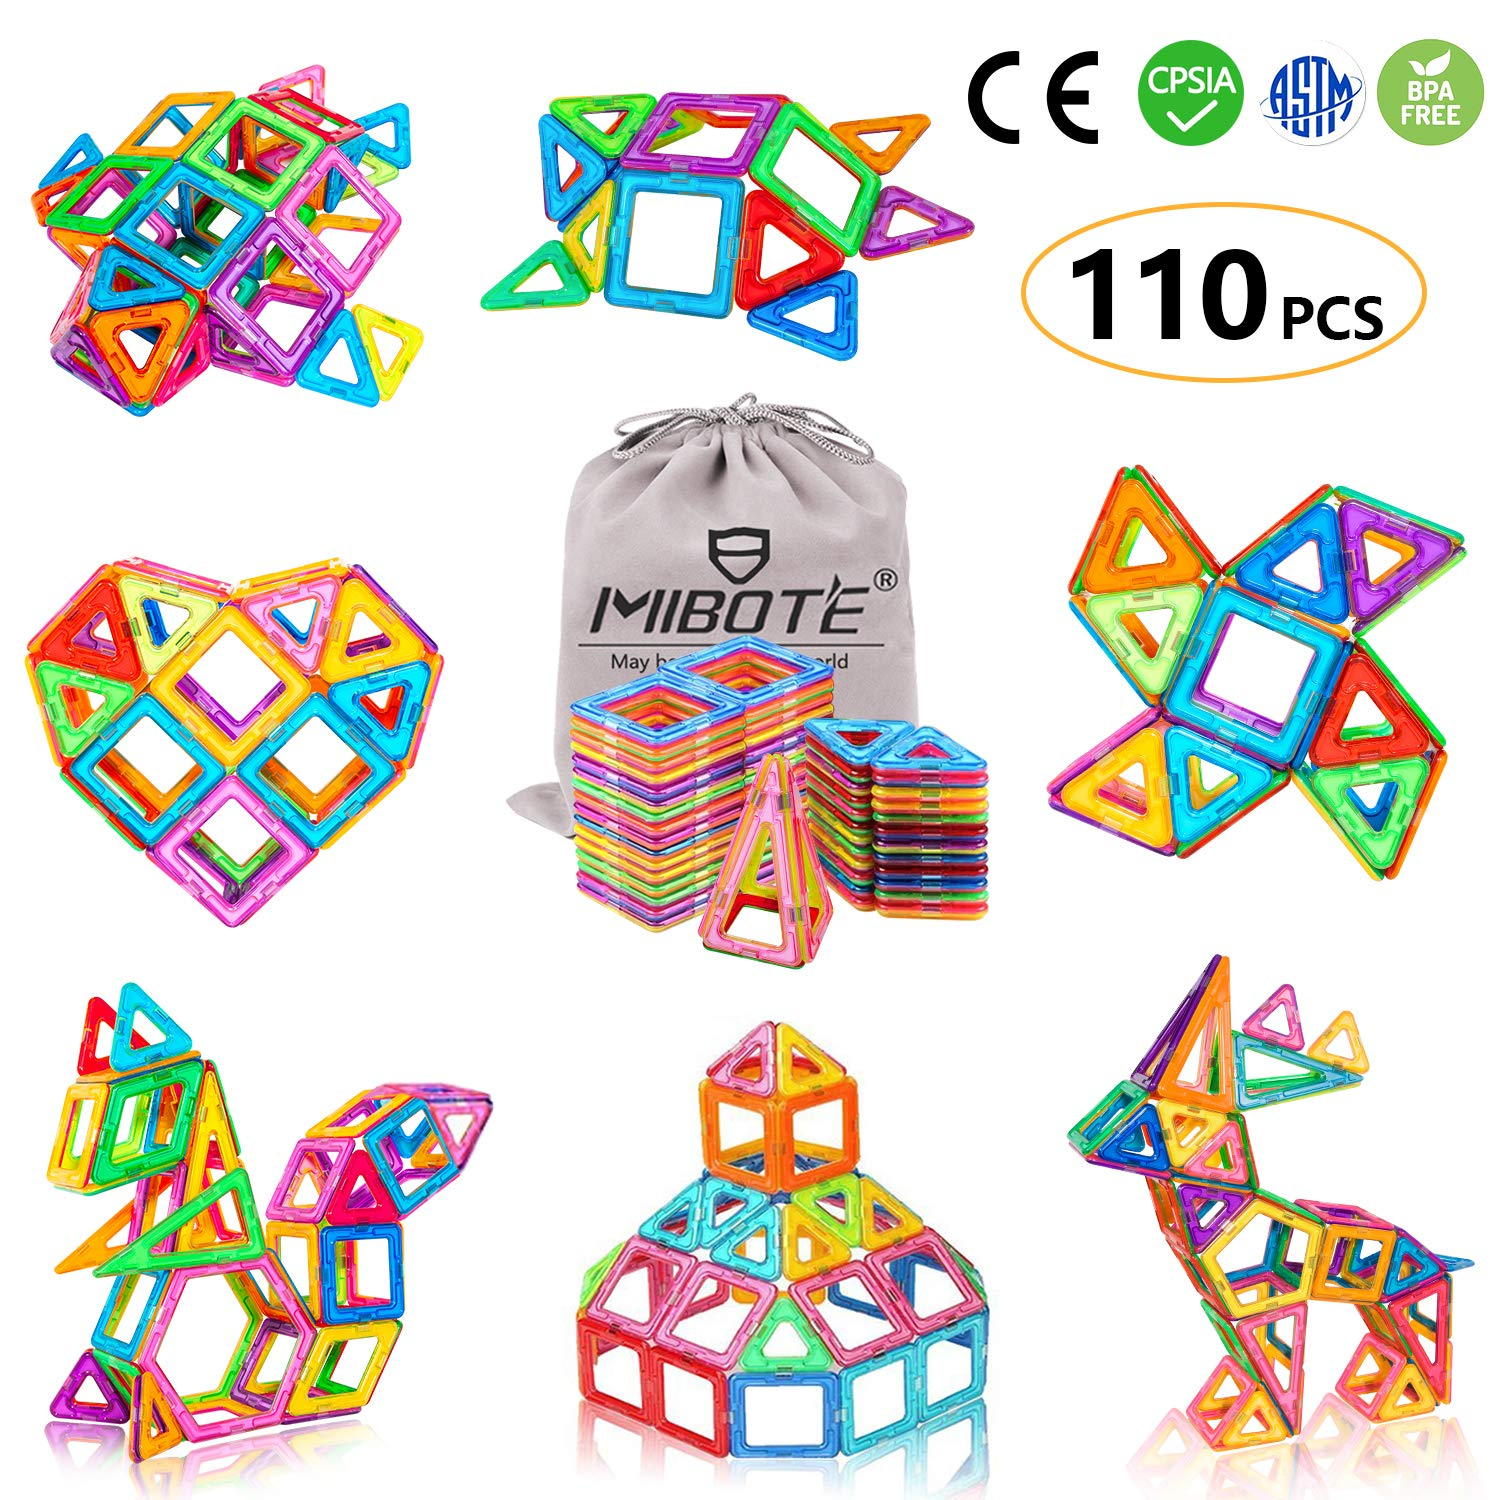 MIBOTE 110 PCS Magnetic Building Blocks Educational STEM Toys Imagination Magnet Tiles Toddler Building Blocks Set for Kids - All of Them are Strong Magnets by MIBOTE